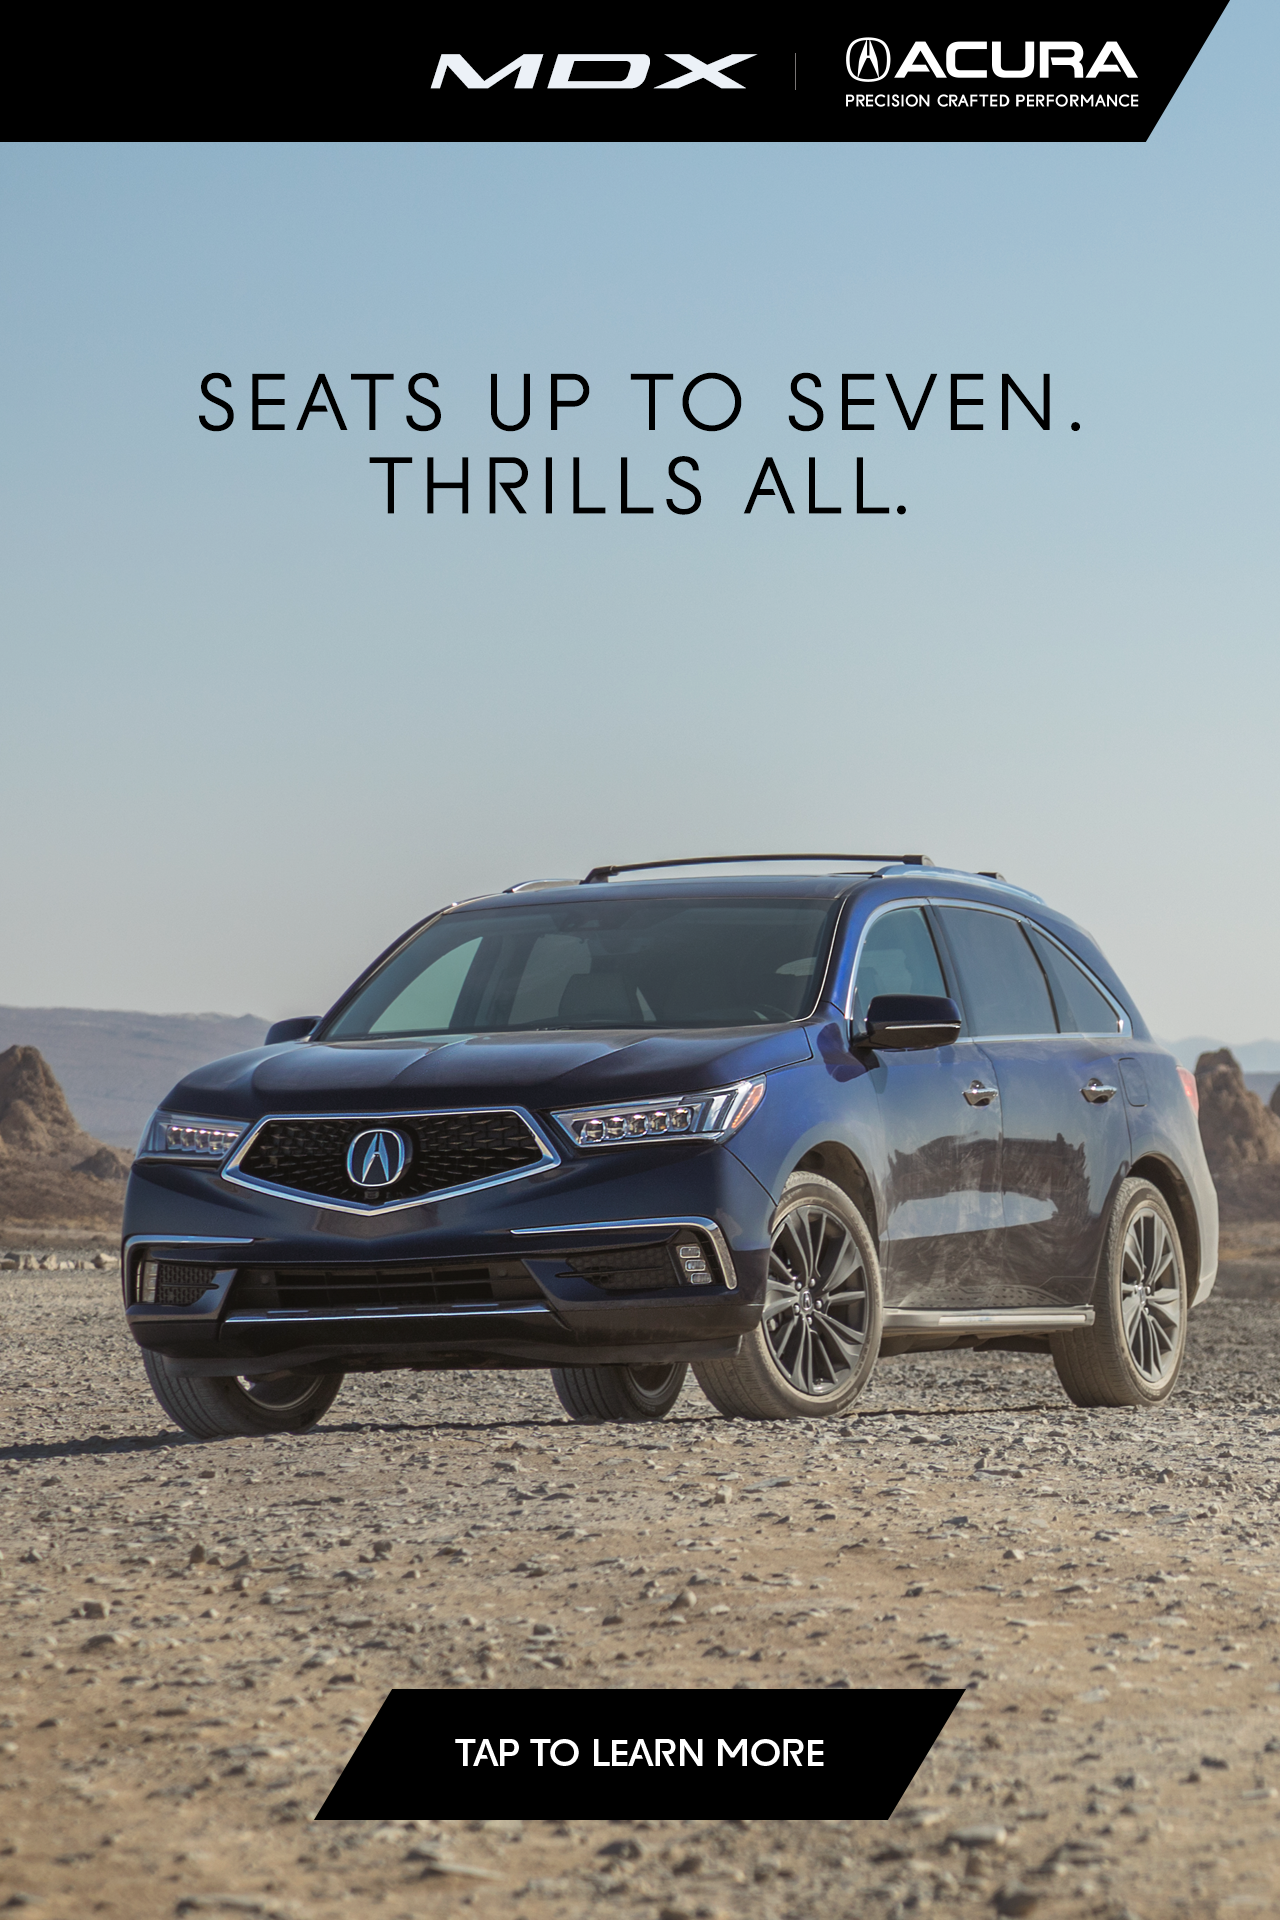 The 2020 Acura Mdx Seats Up To Seven Thrills All Concept Cars Acura Rims For Cars